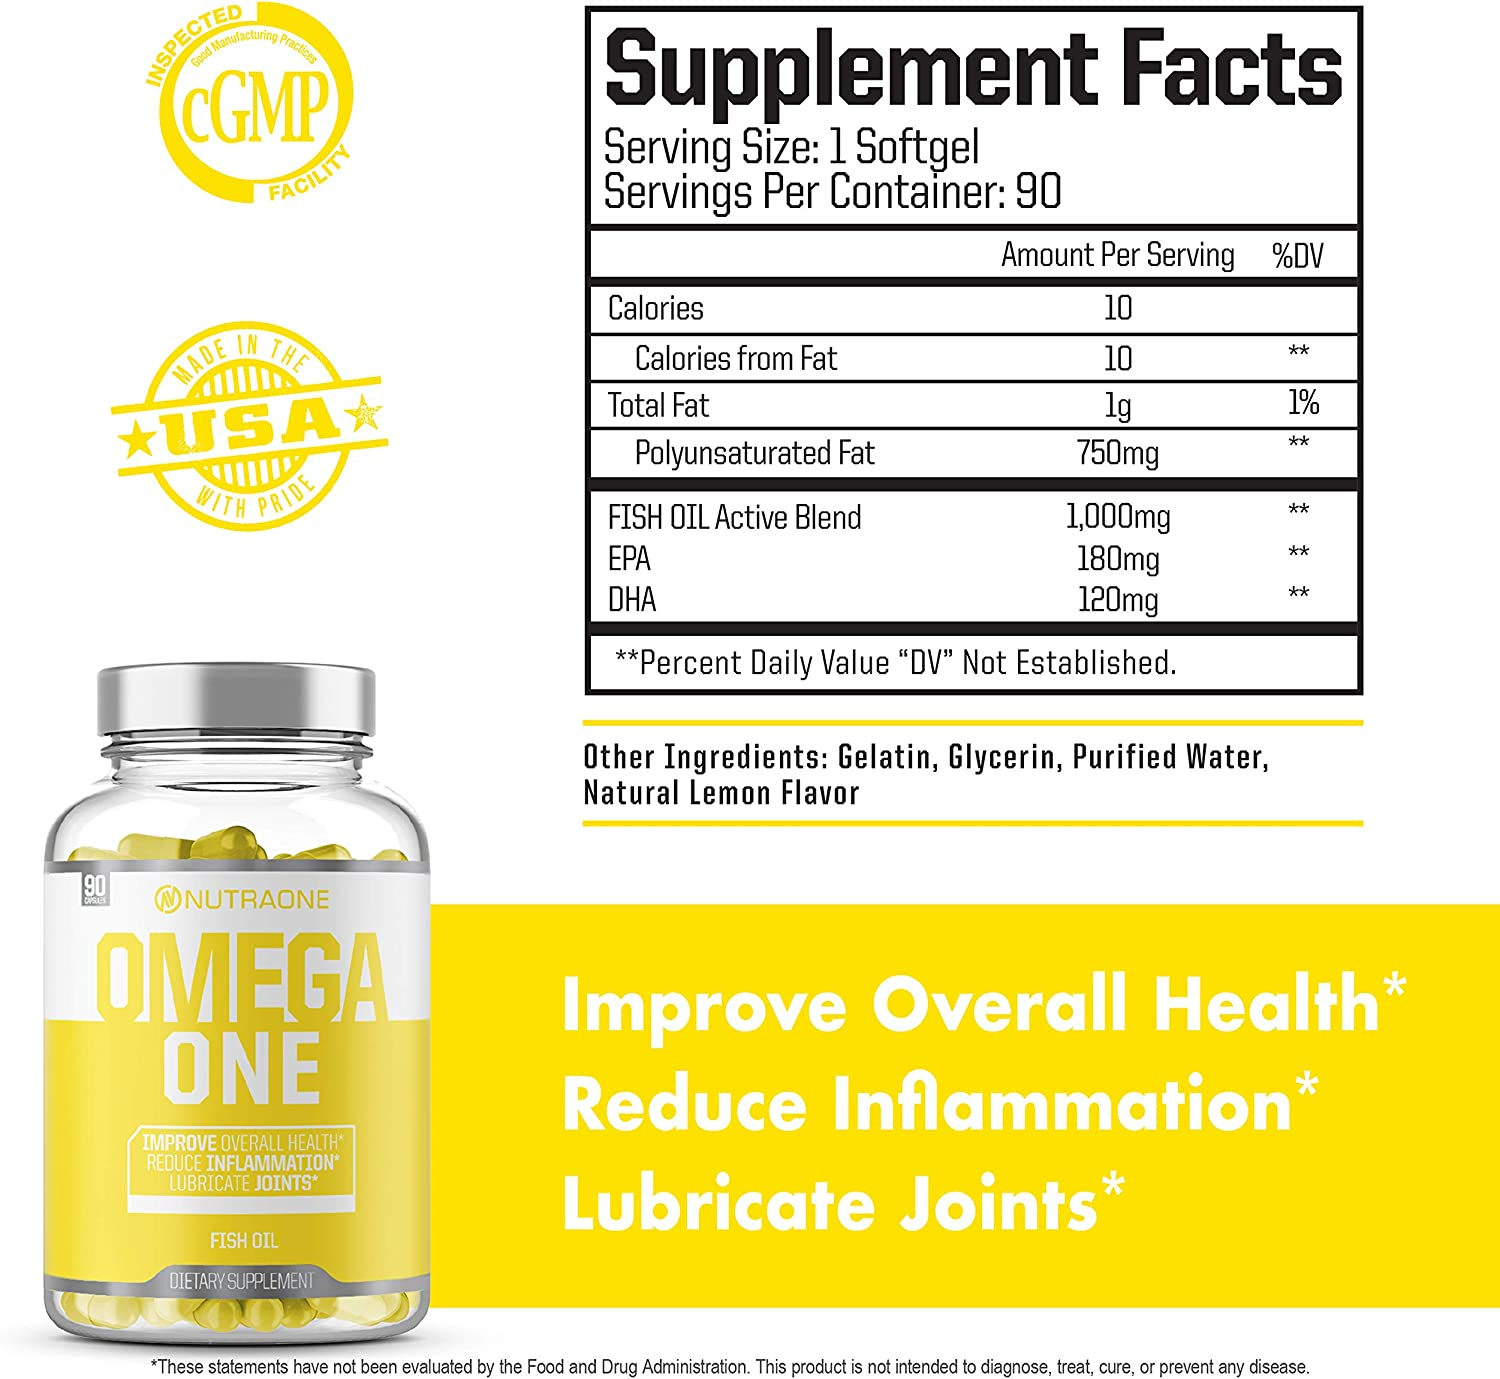 OmegaOne Omega-3 Fish Oil Supplement by NutraOne (90 500mg Fish Oil Pills)